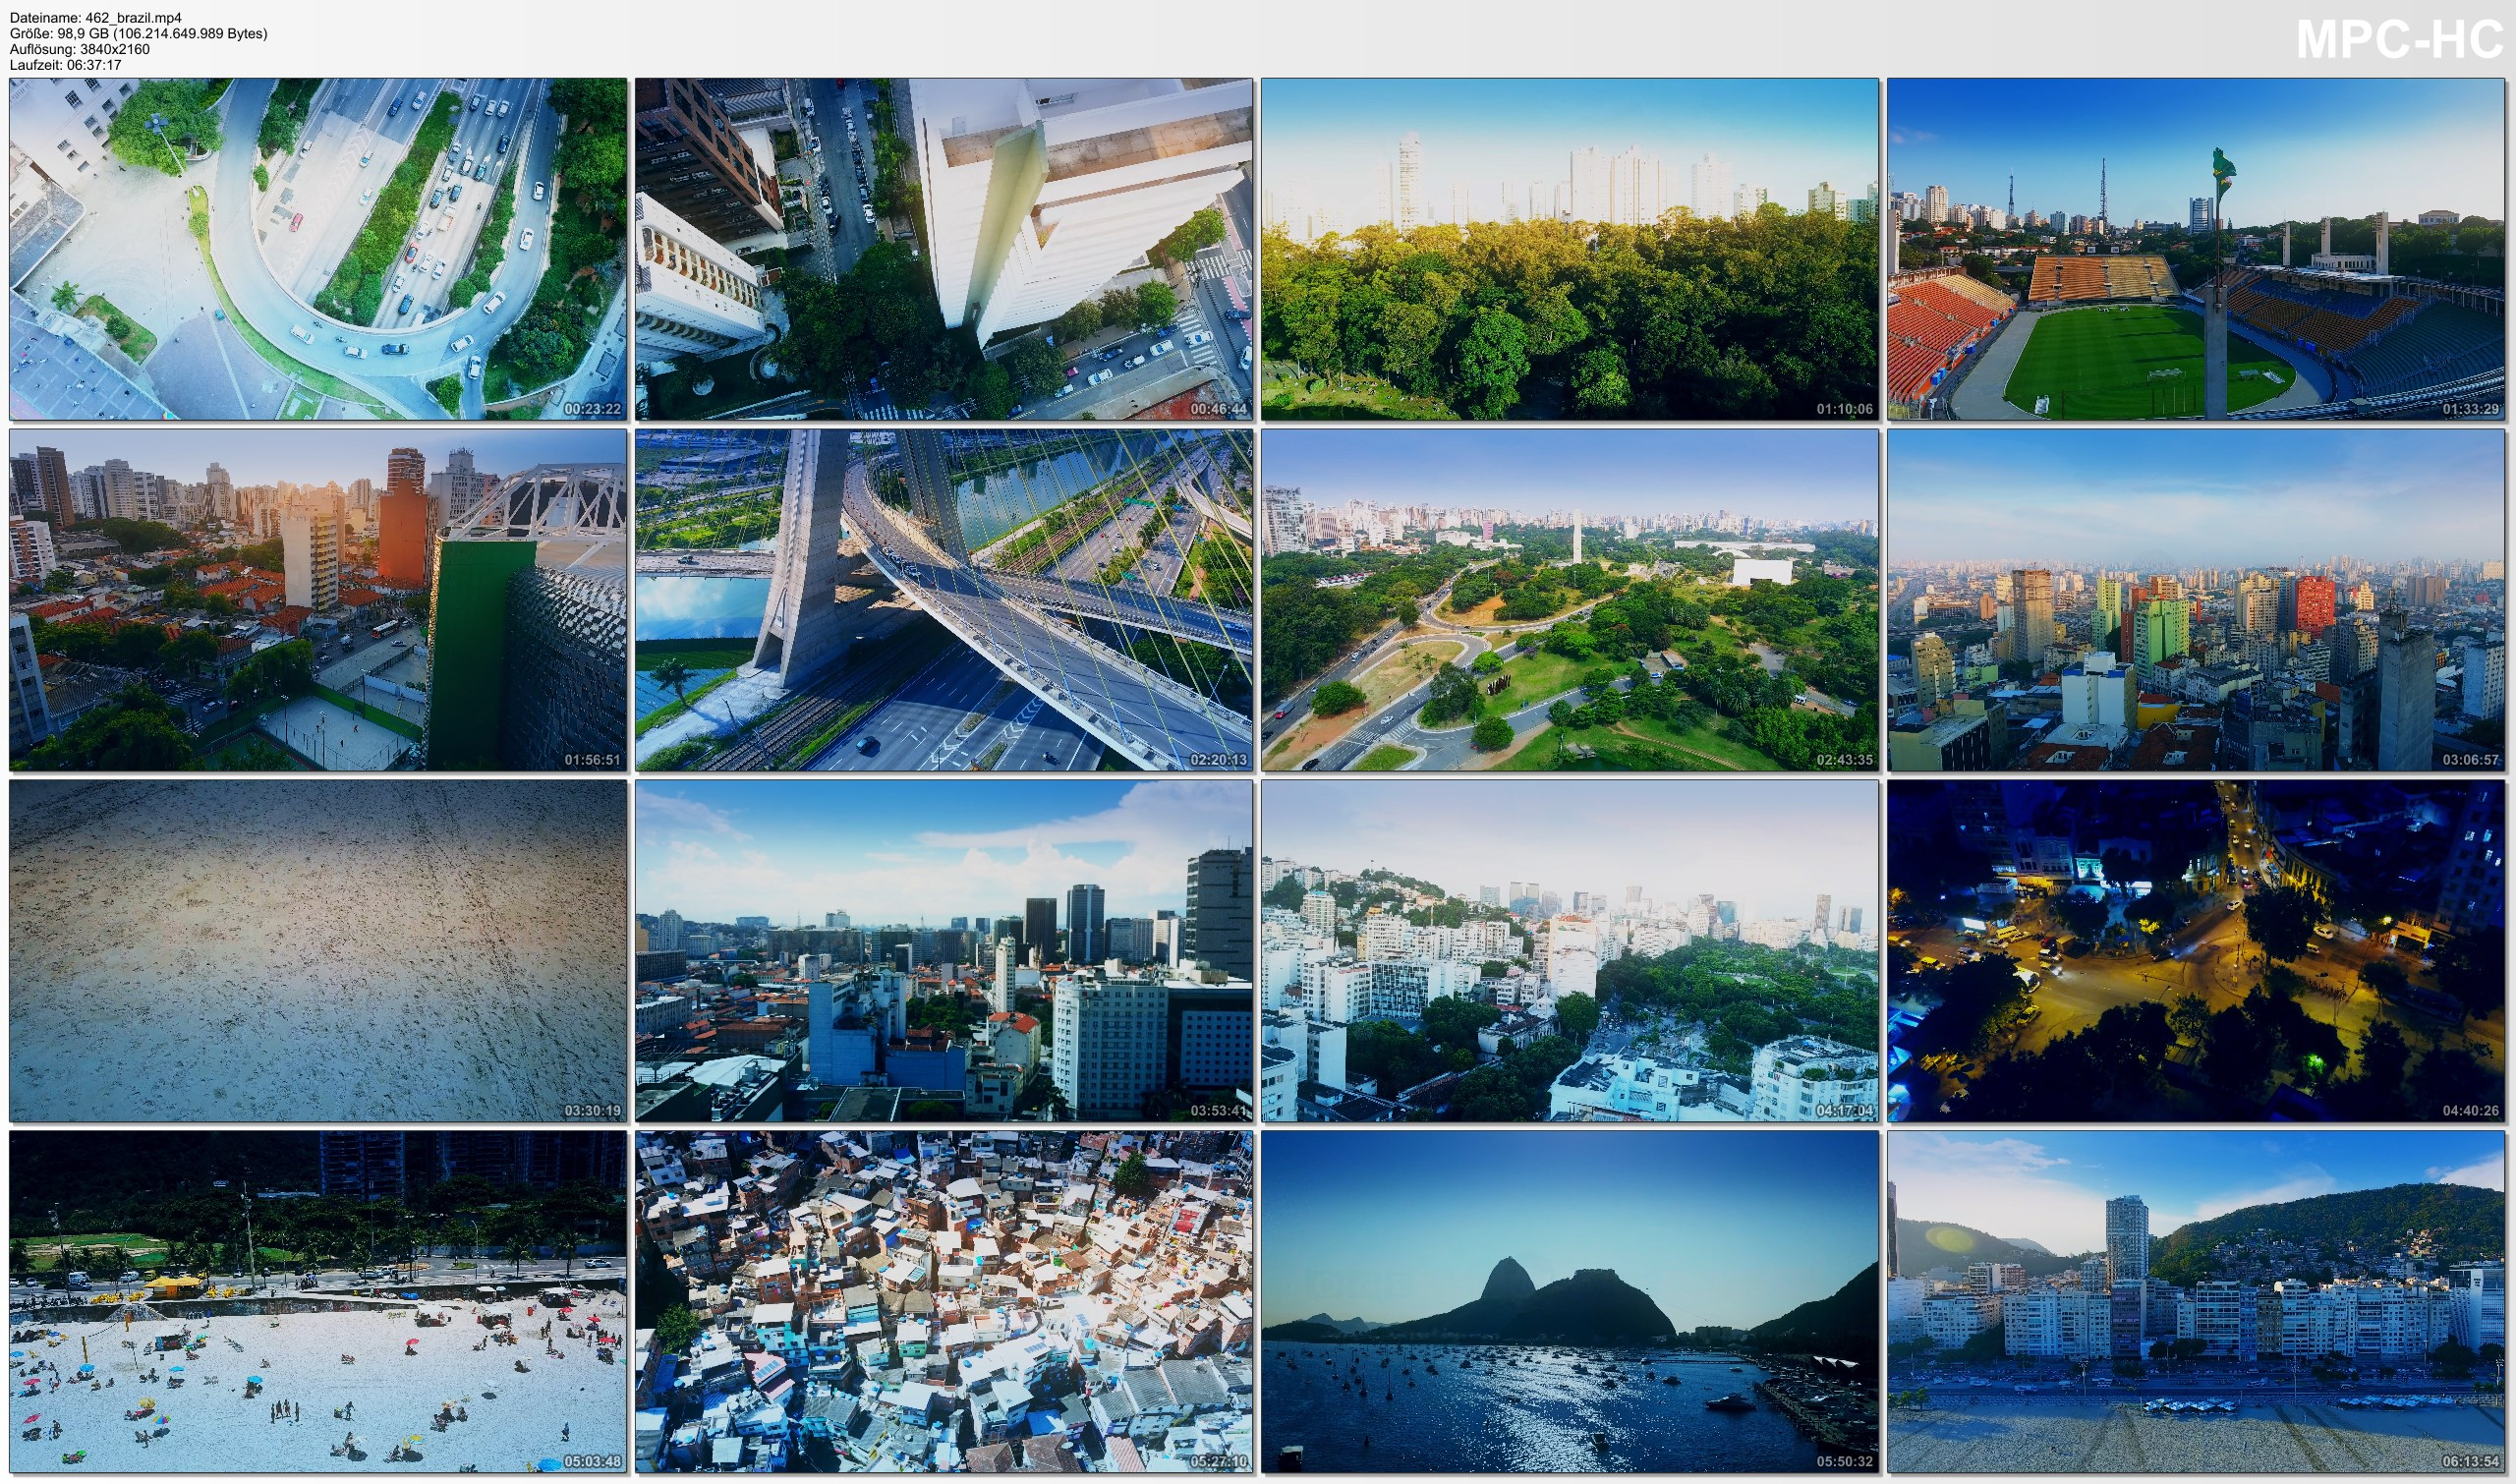 Drone Pictures from Video 【4K】Drone RAW Footage | This is BRAZIL 2020 | Sao Paulo | Rio de Janeiro Brasil UltraHD Stock Video